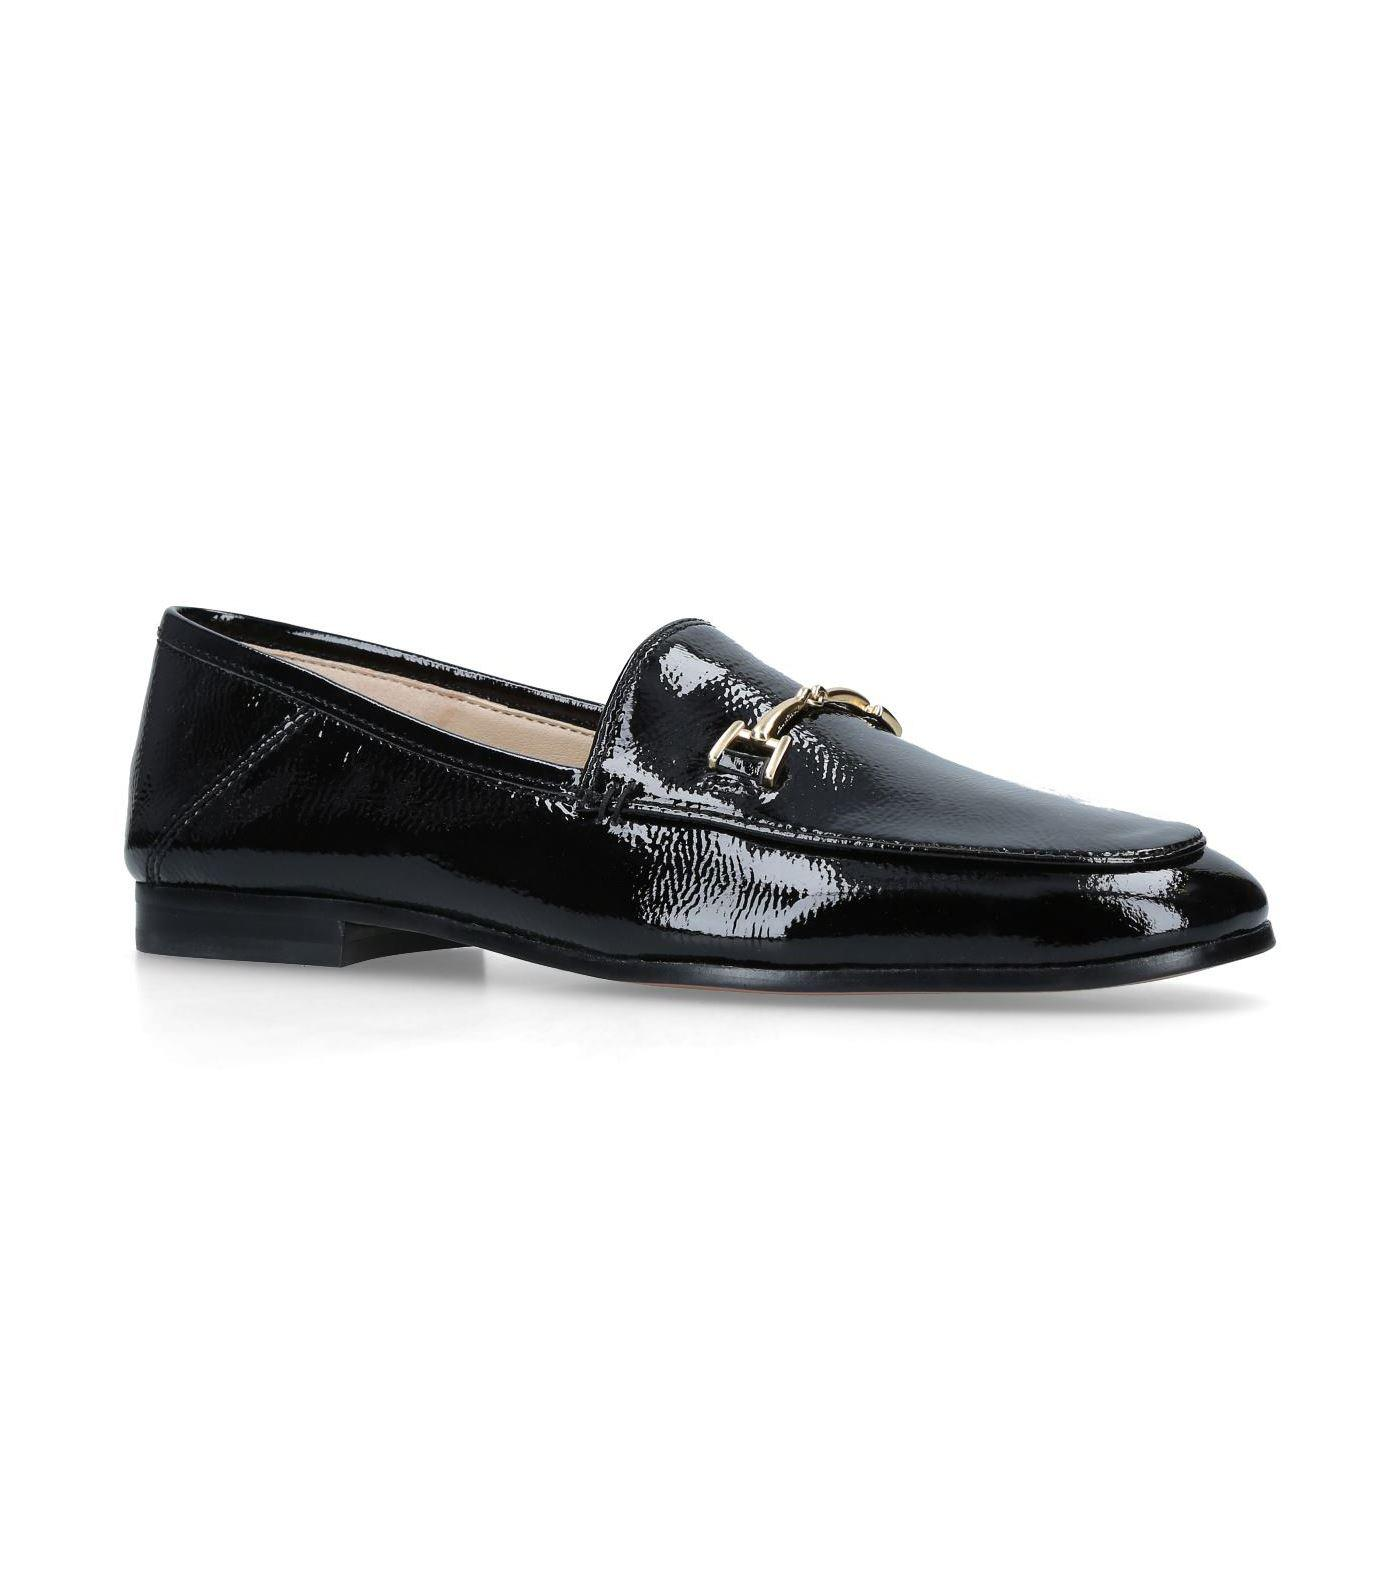 5c131833ccde6 Lyst - Sam Edelman Patent Leather Loraine Loafers in Black